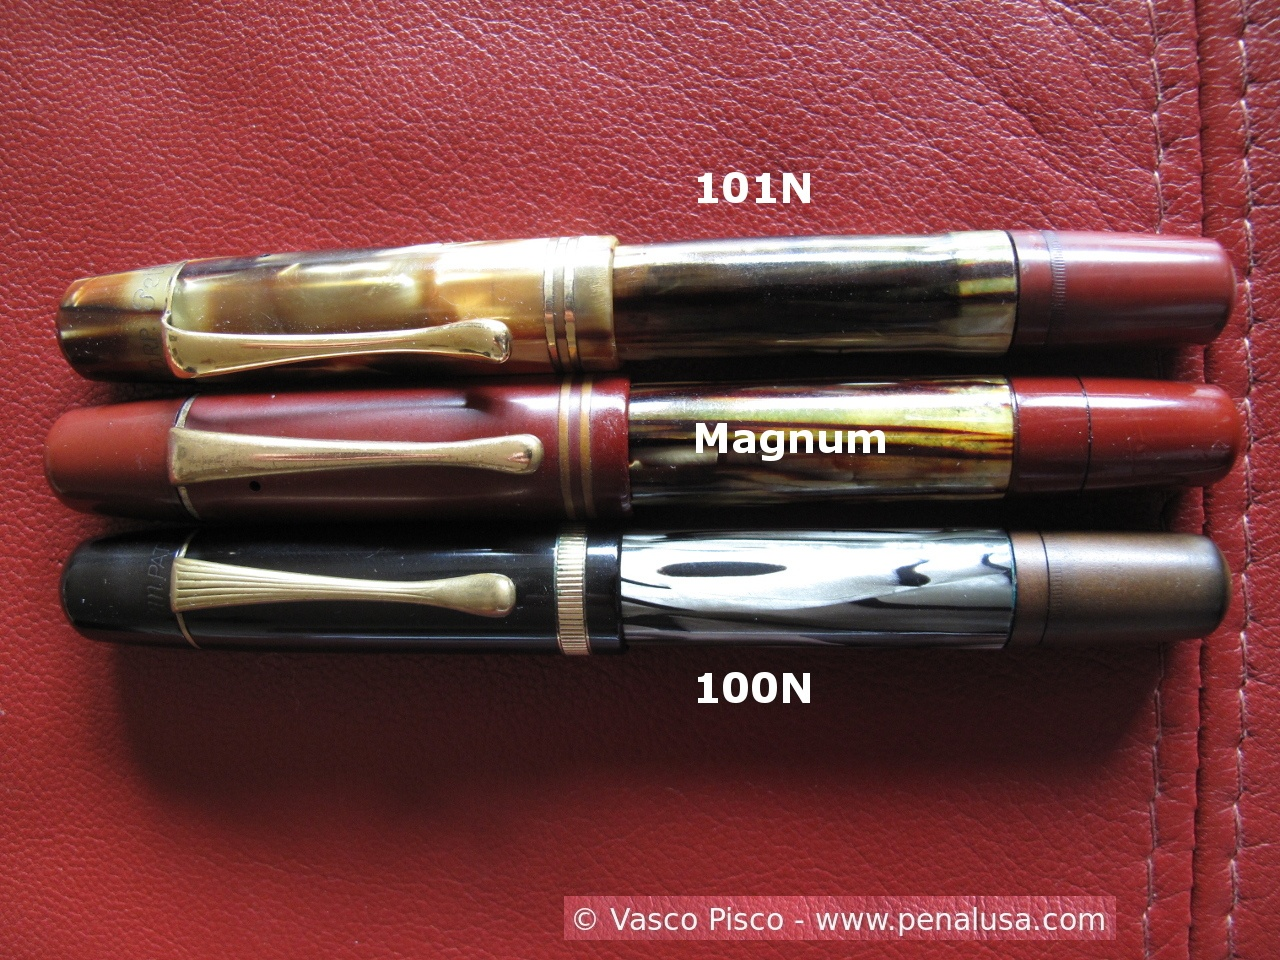 Pelikan 101N, Magnum and 100N comparison